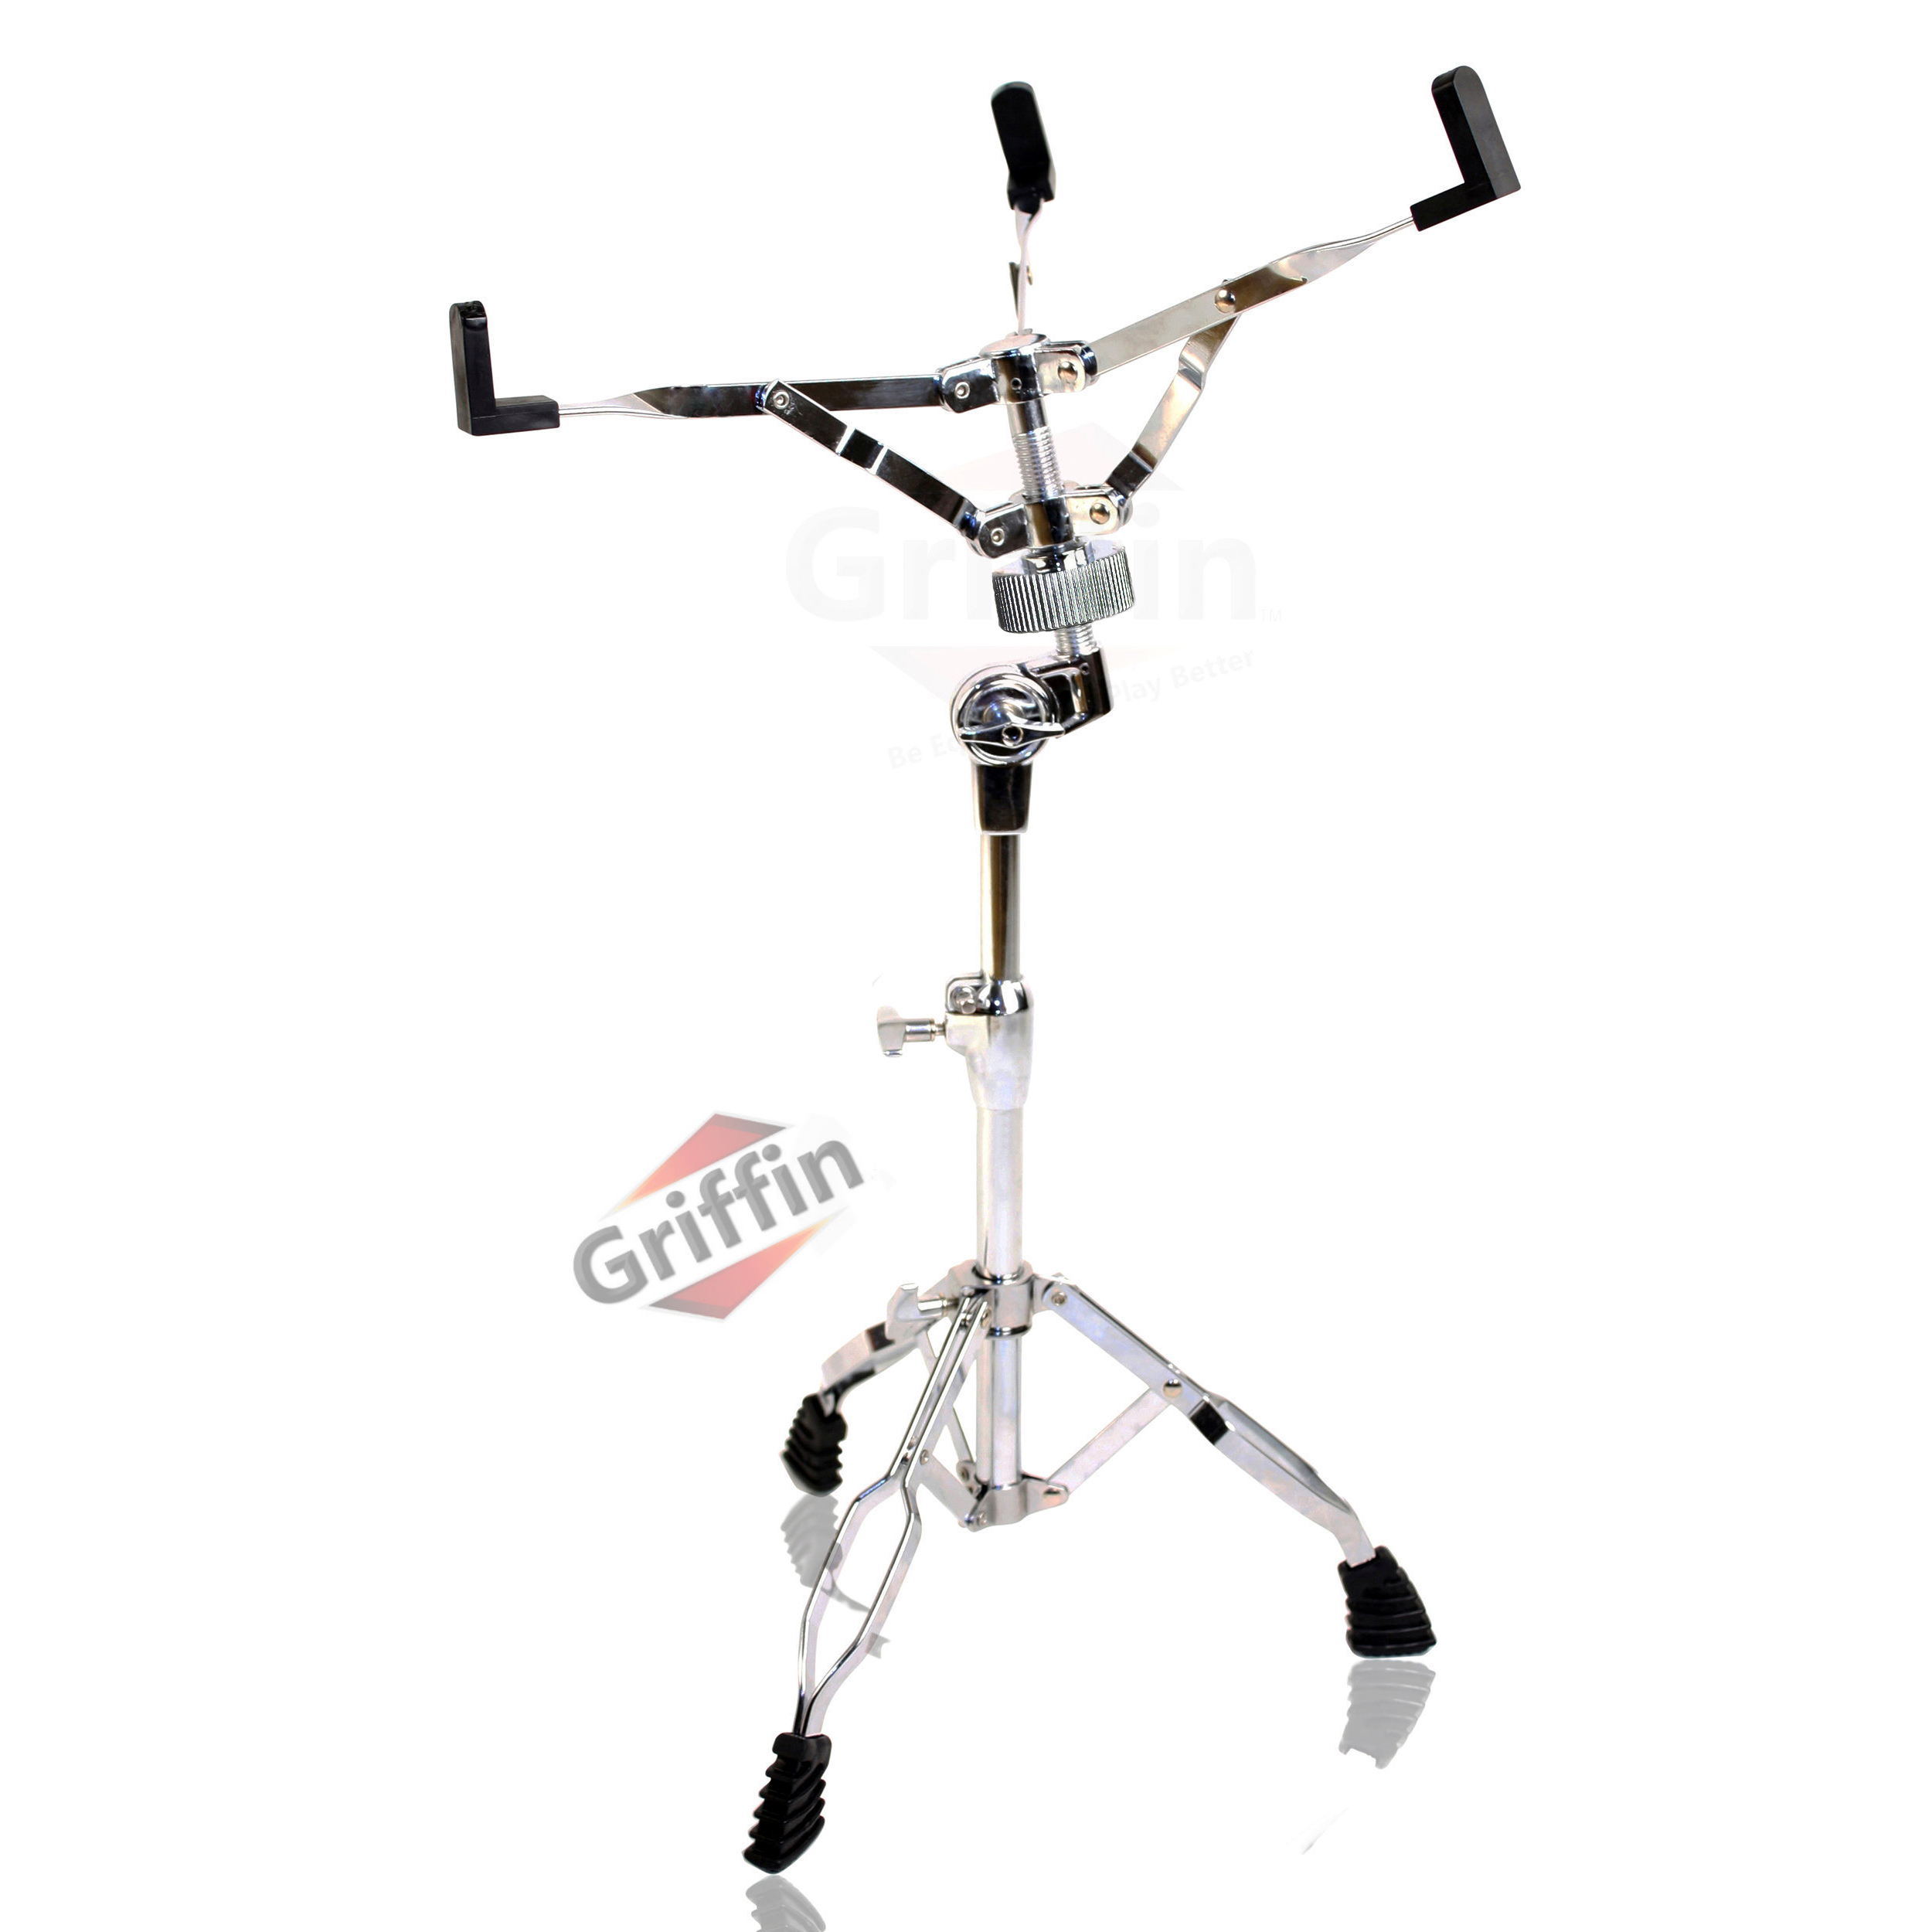 Snare Drum Stand by Griffin|Deluxe Percussion Hardware Base Kit | Double Braced, Light Weight Mount for Standard Snare and Tom Drums | Slip-Proof Gear Tilter | Sturdy Clamp Style Basket Holder